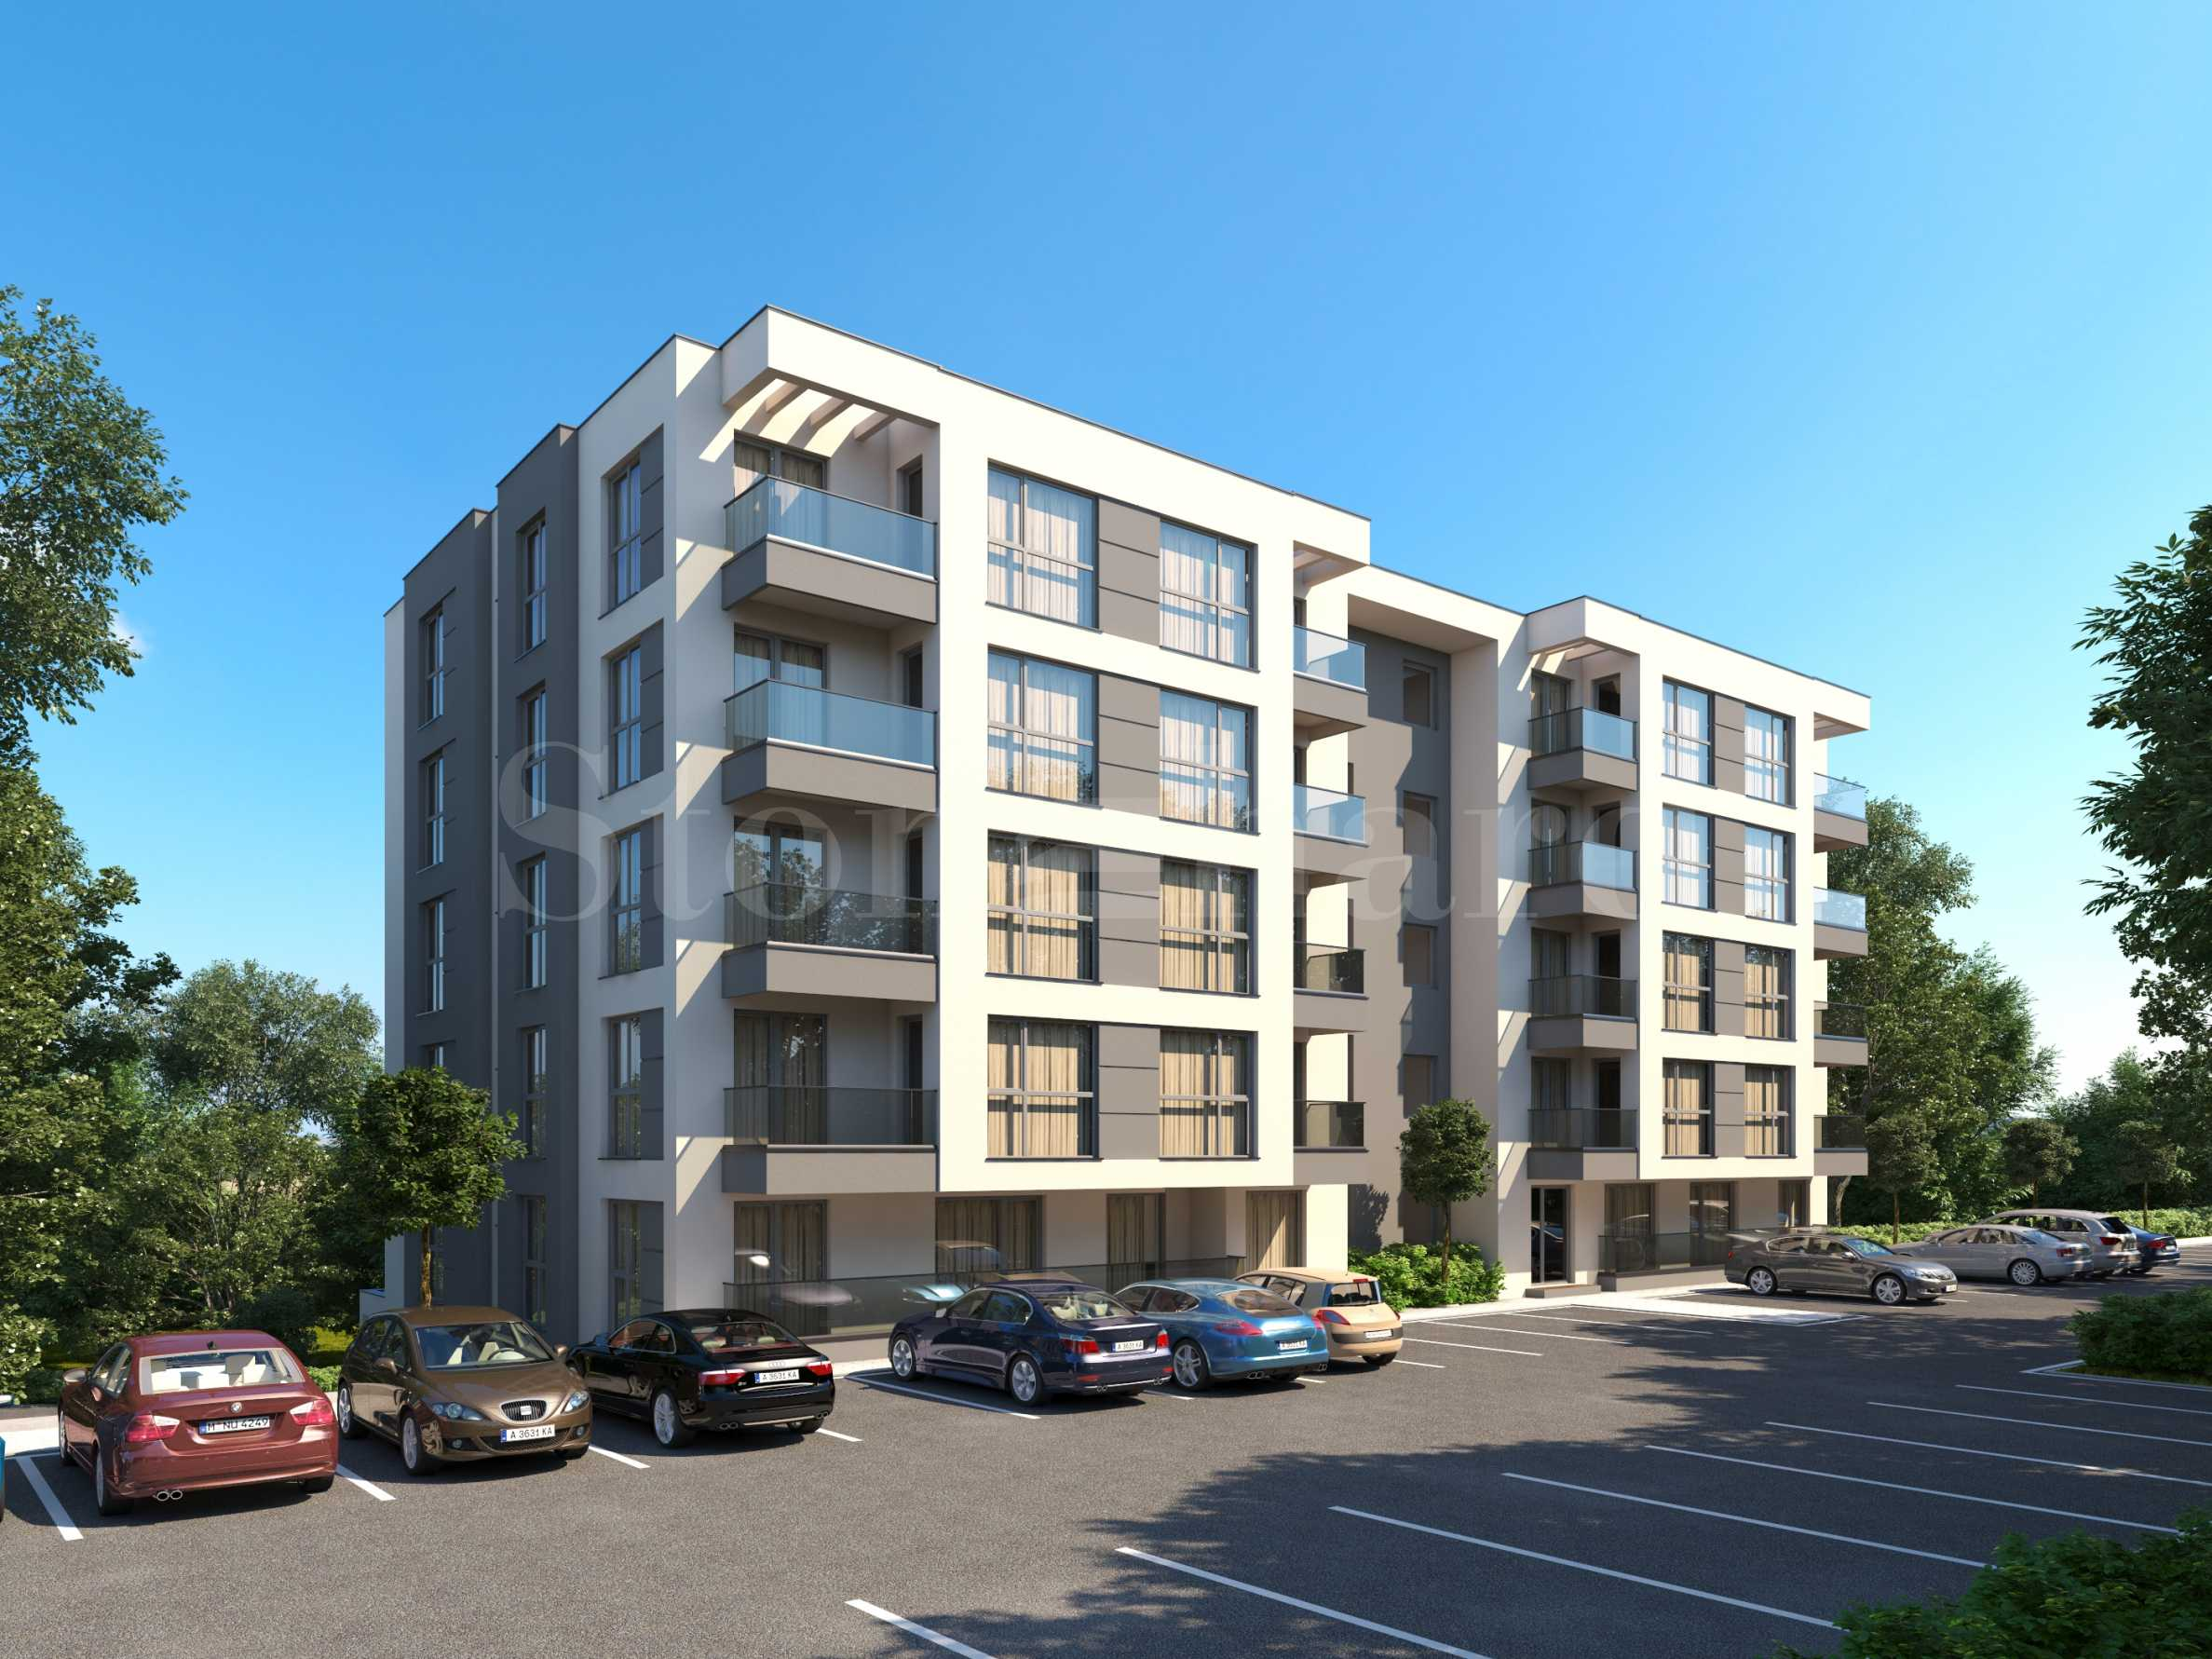 Building - 7. Apartments in a modern complex in Burgas2 - Stonehard